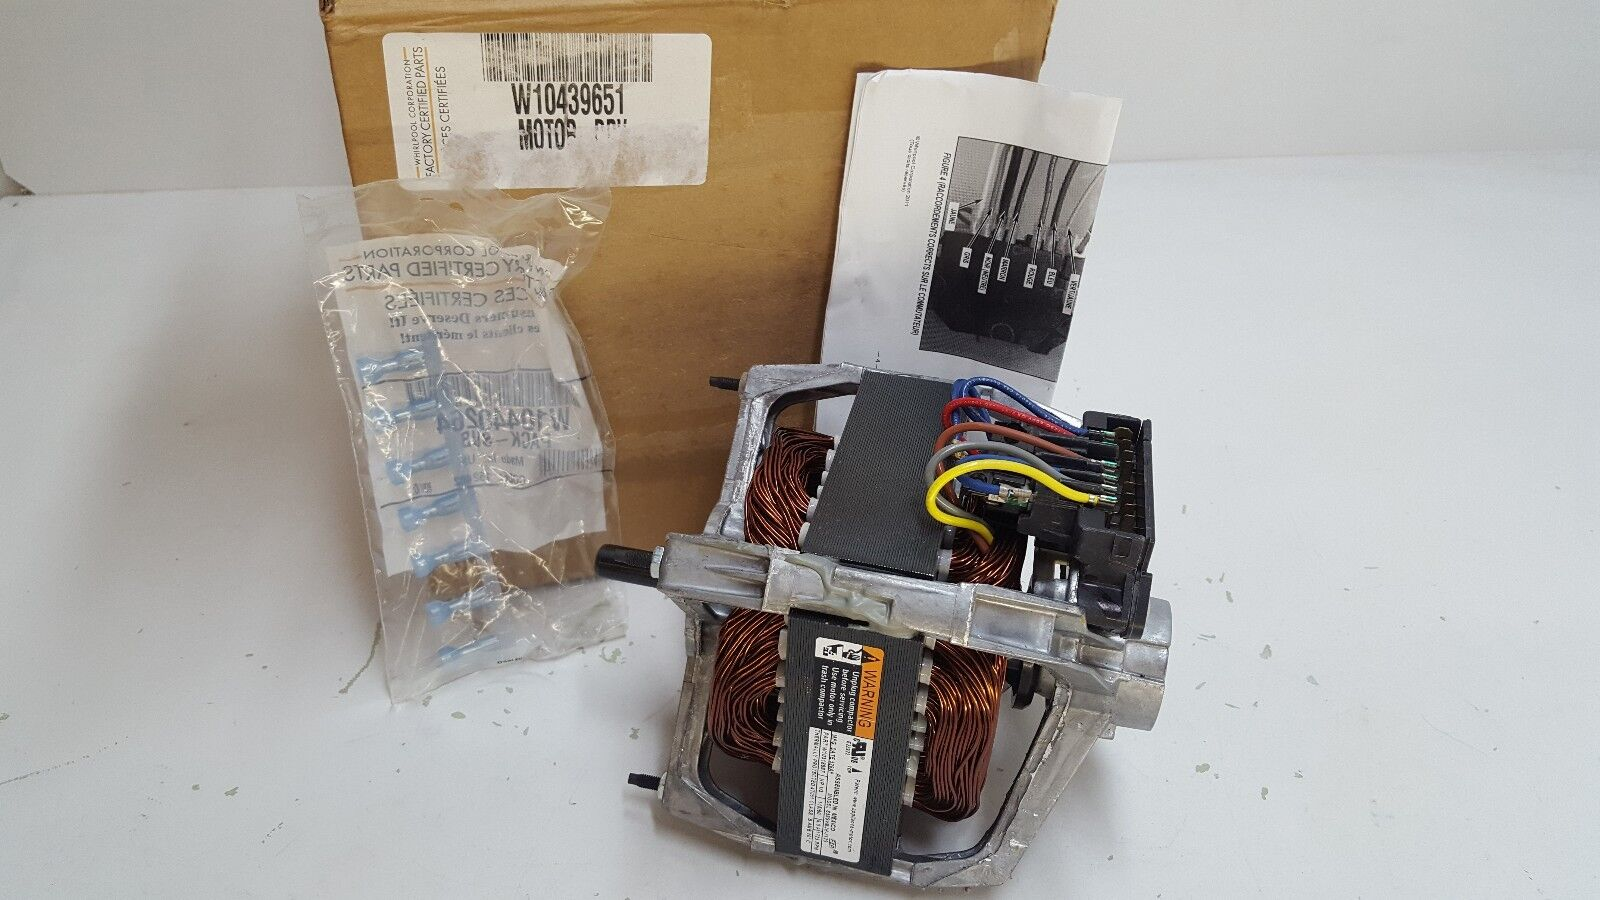 W10439651 WHIRLPOOL TRASH COMPACTOR DRIVE MOTOR *NEW PART*